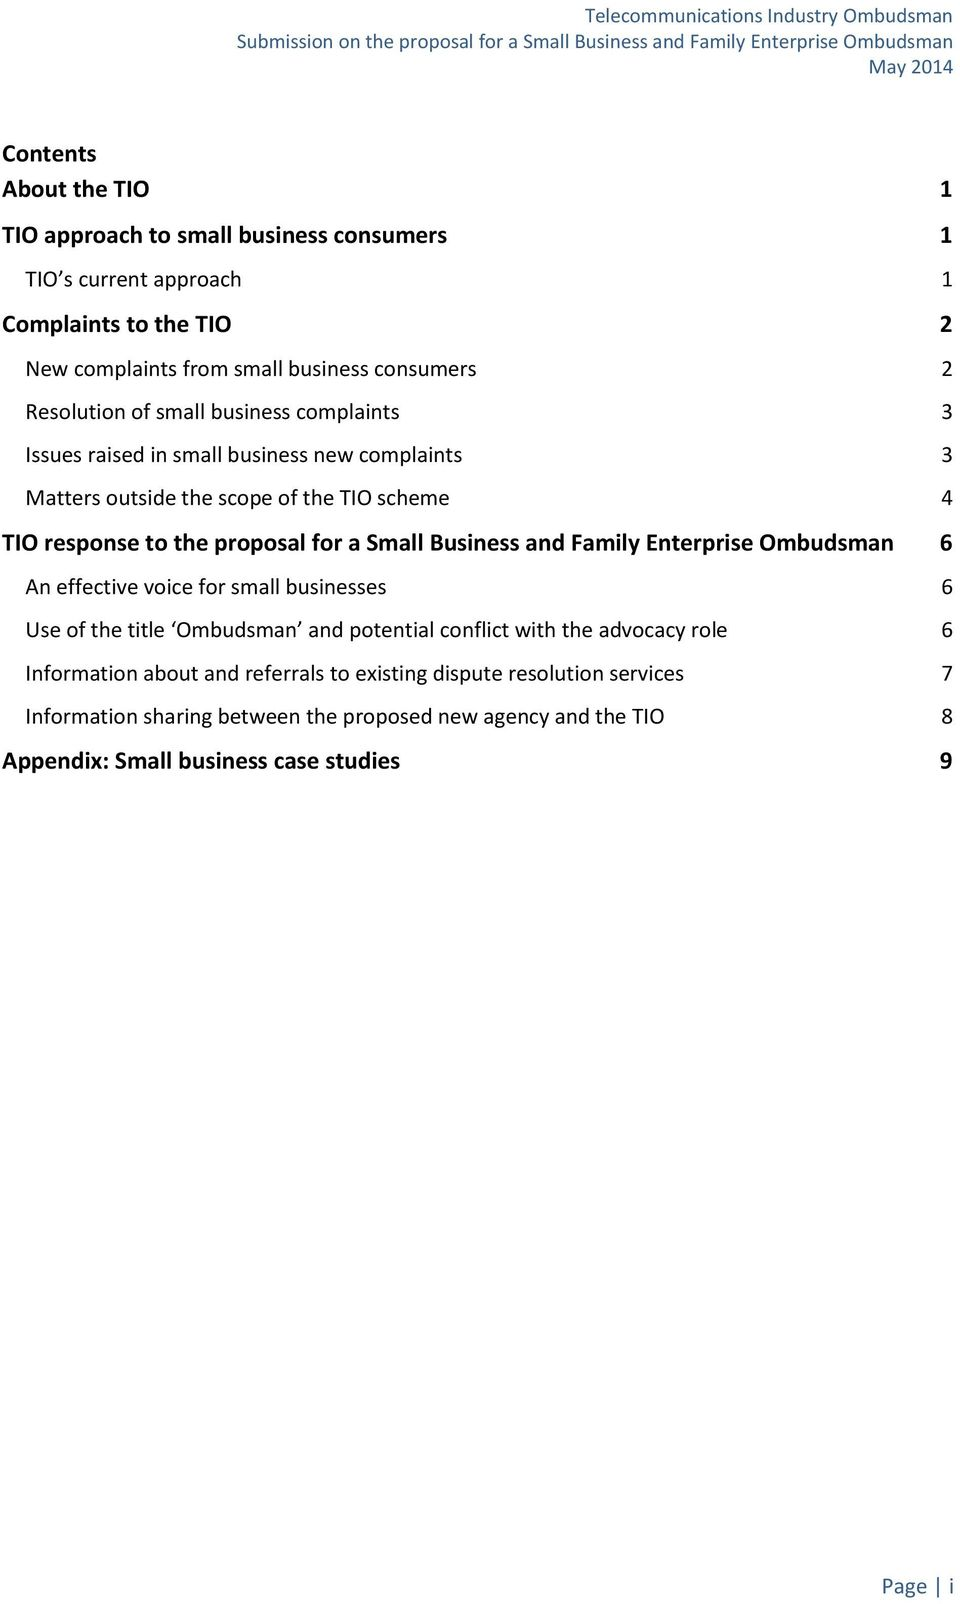 proposal for a Small Business and Family Enterprise Ombudsman 6 An effective voice for small businesses 6 Use of the title Ombudsman and potential conflict with the advocacy role 6